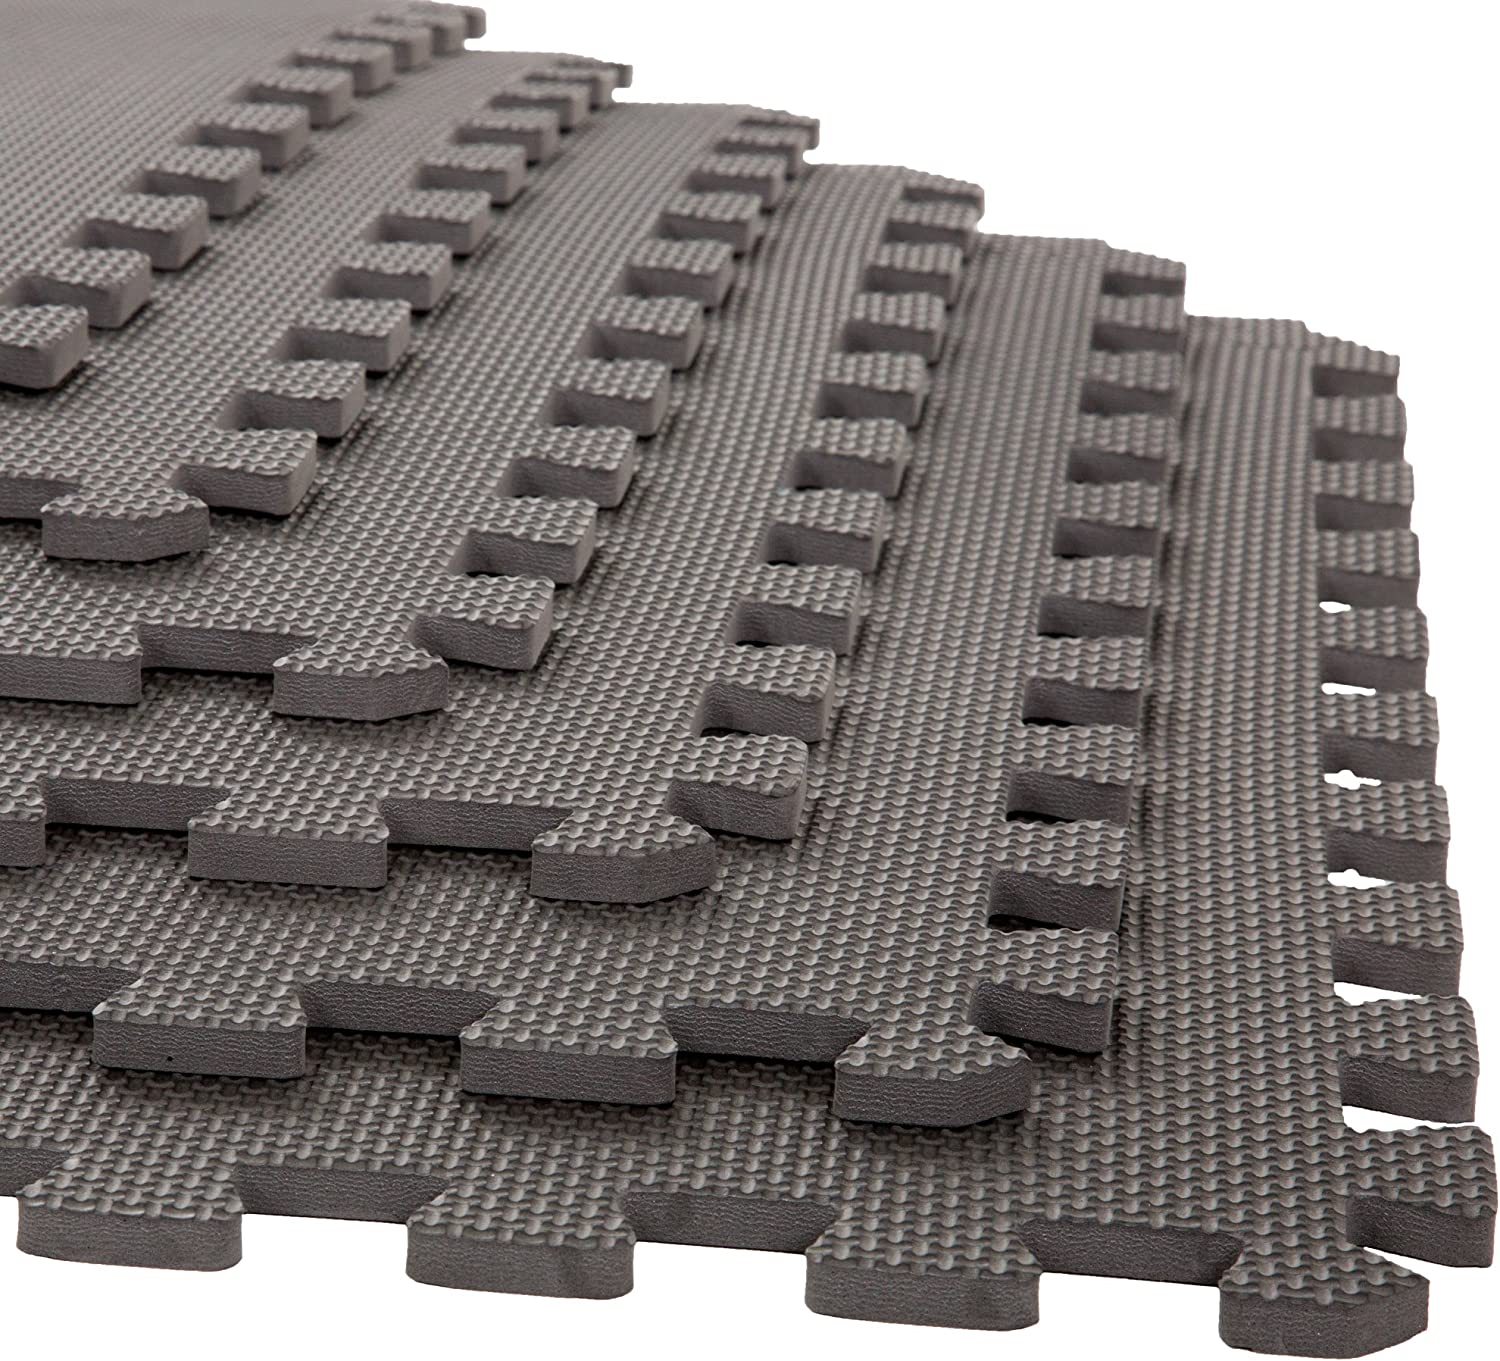 Foam Mat Floor Tiles, Interlocking EVA Foam Padding by Stalwart – Soft Flooring for Exercising, Yoga, Camping, Playroom – 6 Pack, .375 inches thick